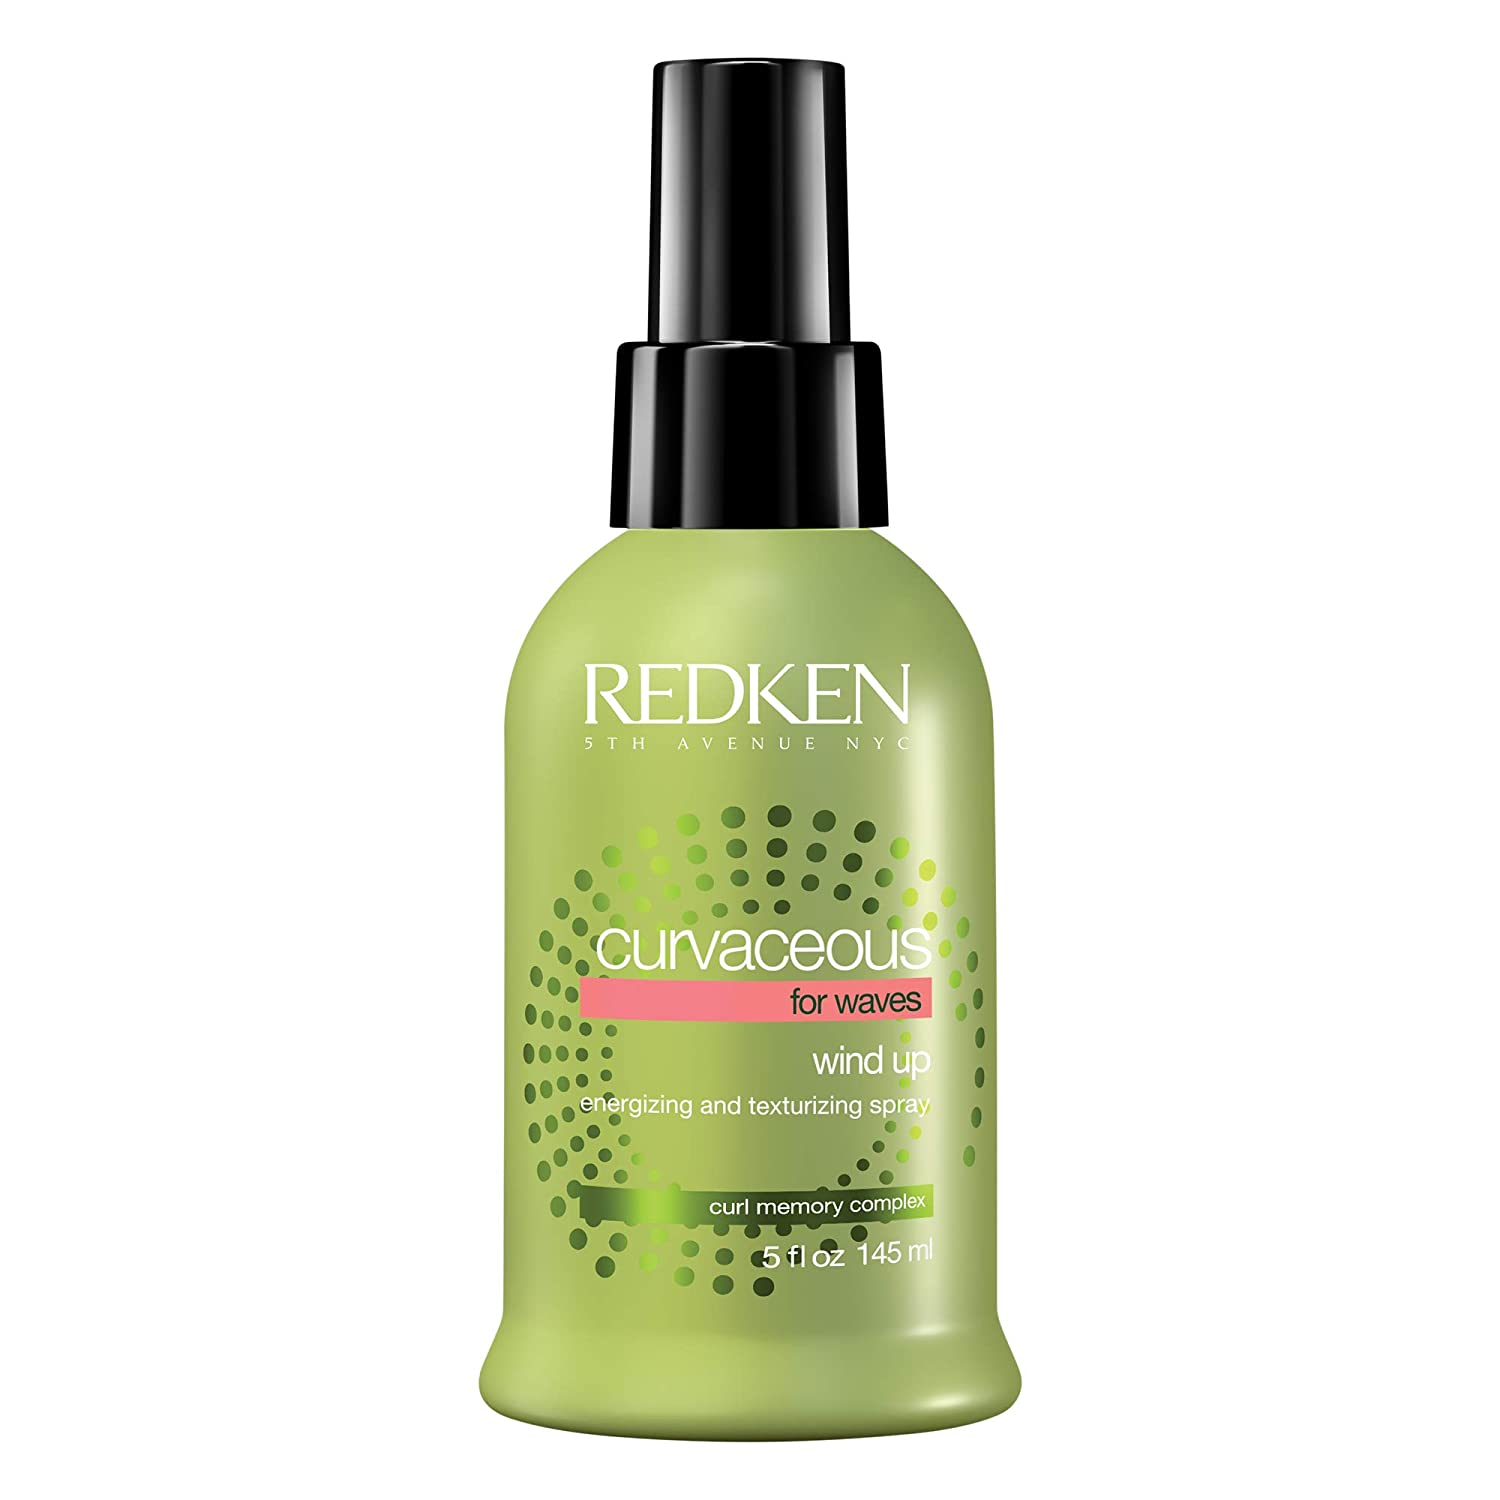 Redken Curvaceous Wind Up Texturizing Spray